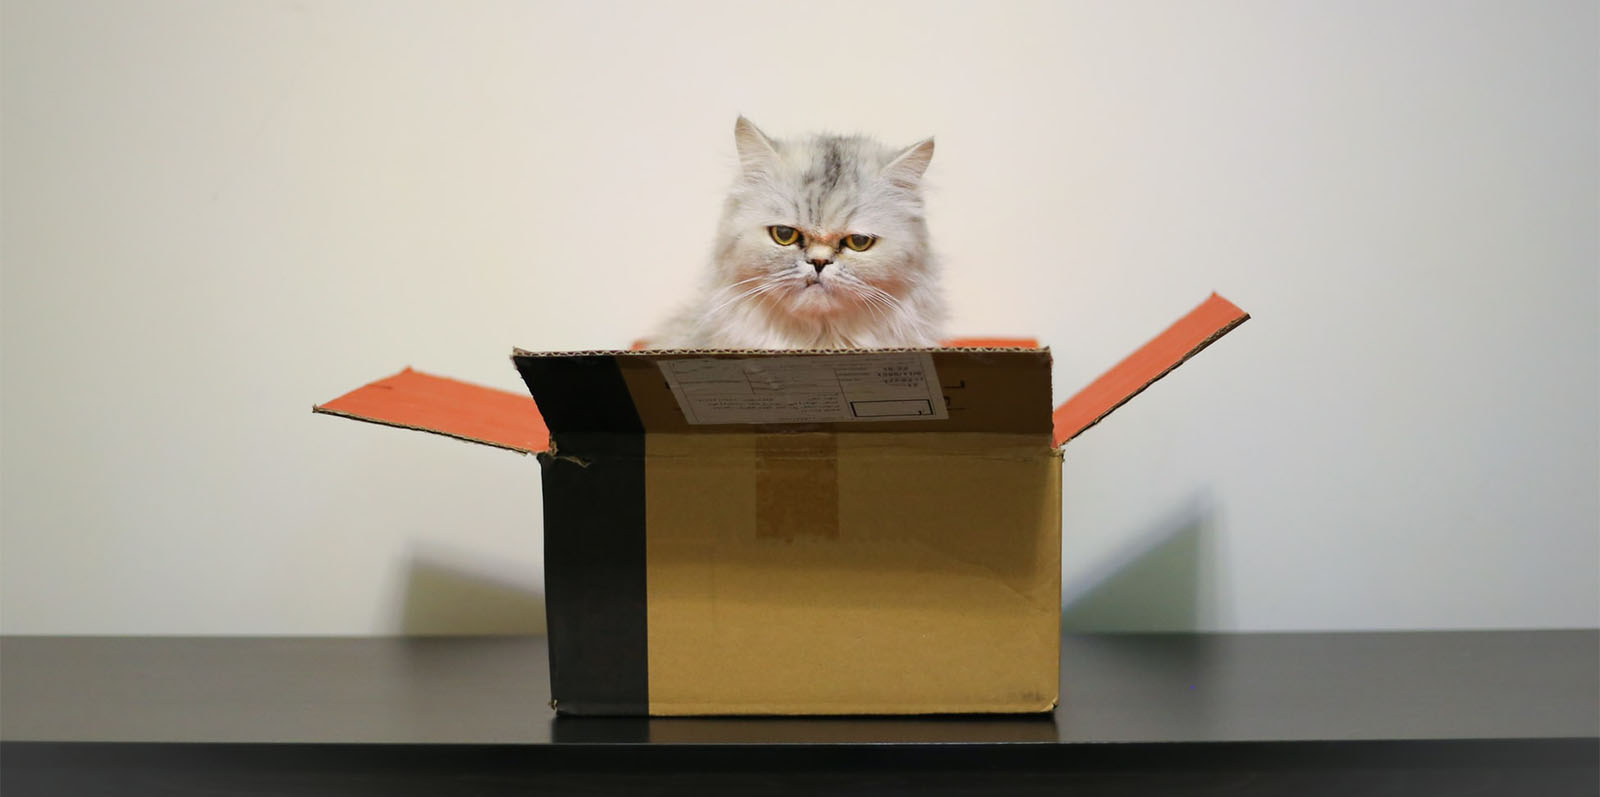 Is Your Data Trapped in a Black Box like Schrodinger's Cat?